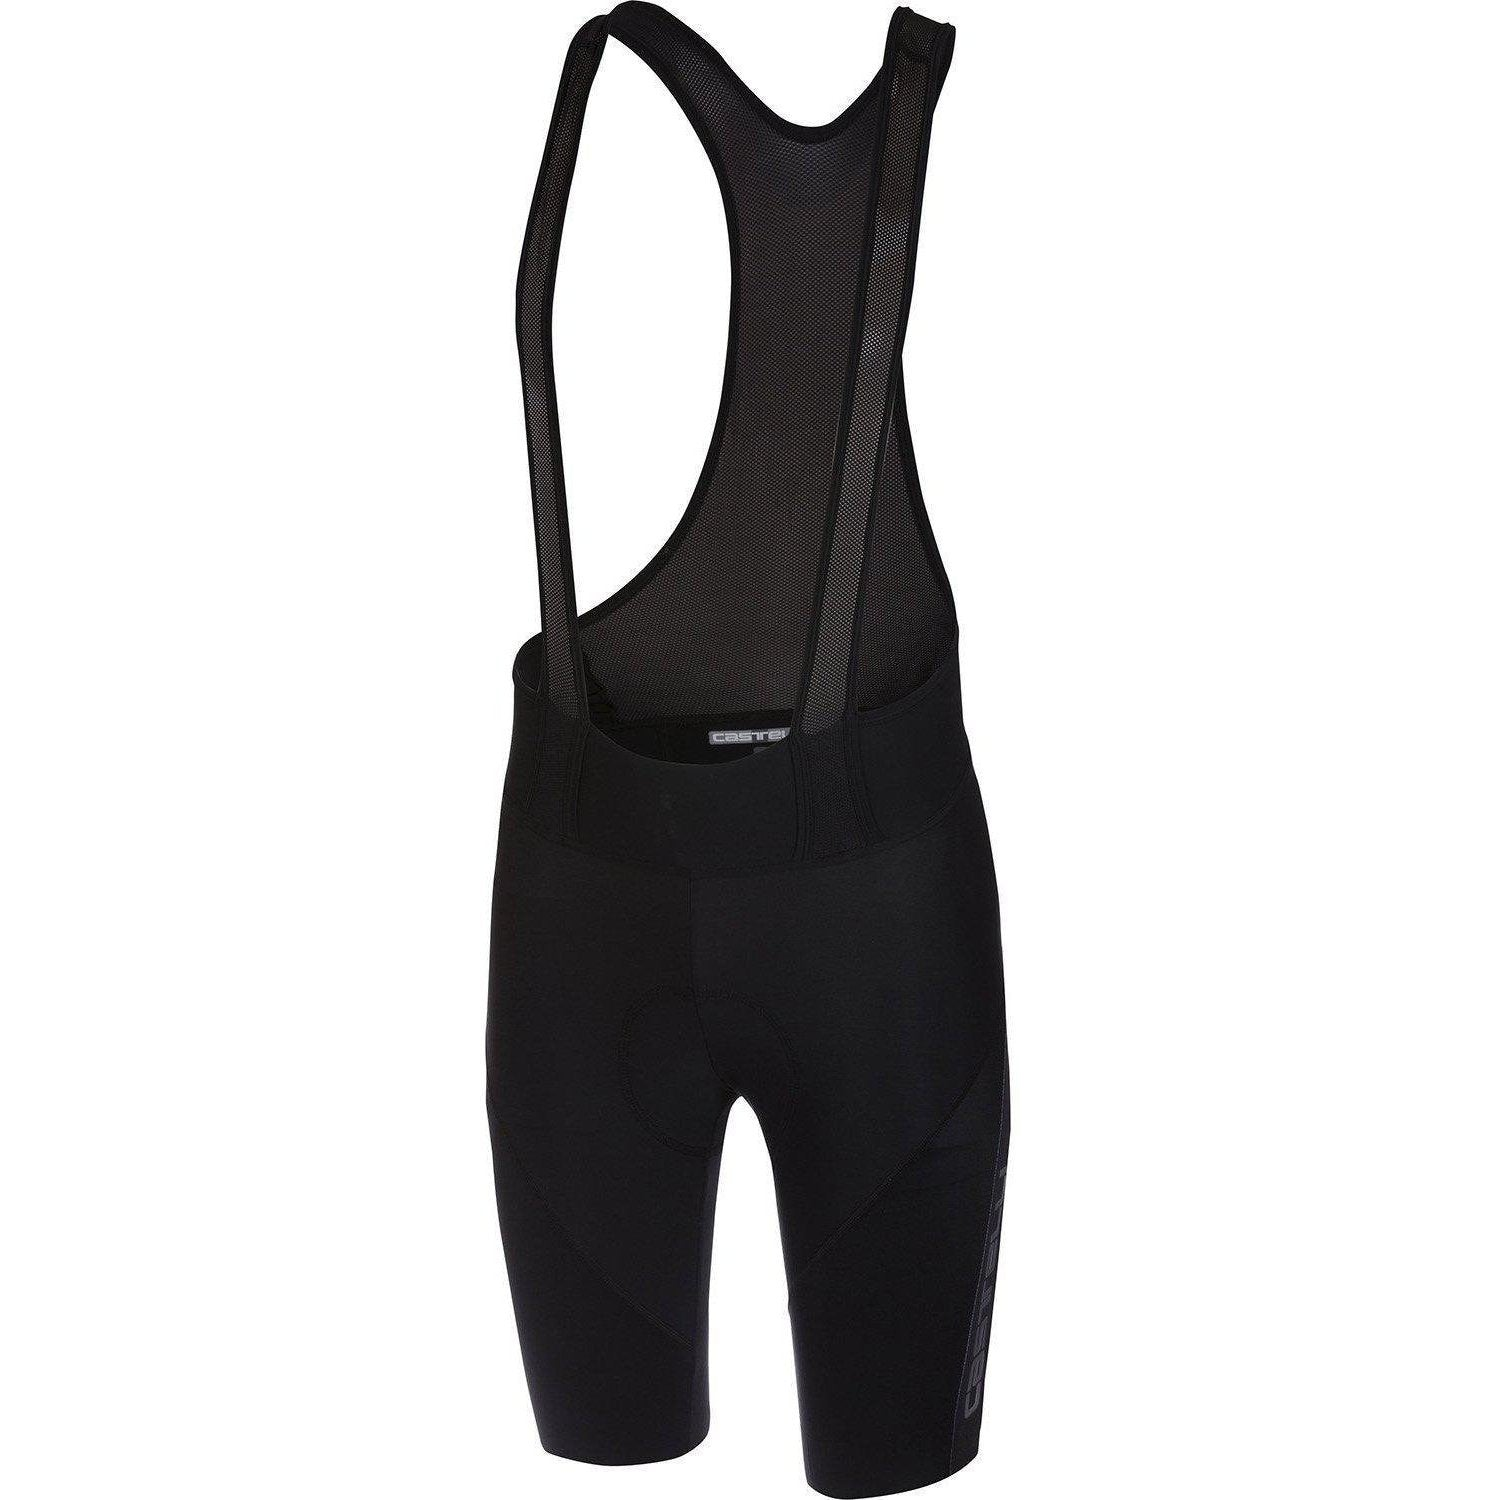 Castelli-Castelli Velocissimo 4 Bib Shorts-Black-S-CS180090102-saddleback-elite-performance-cycling